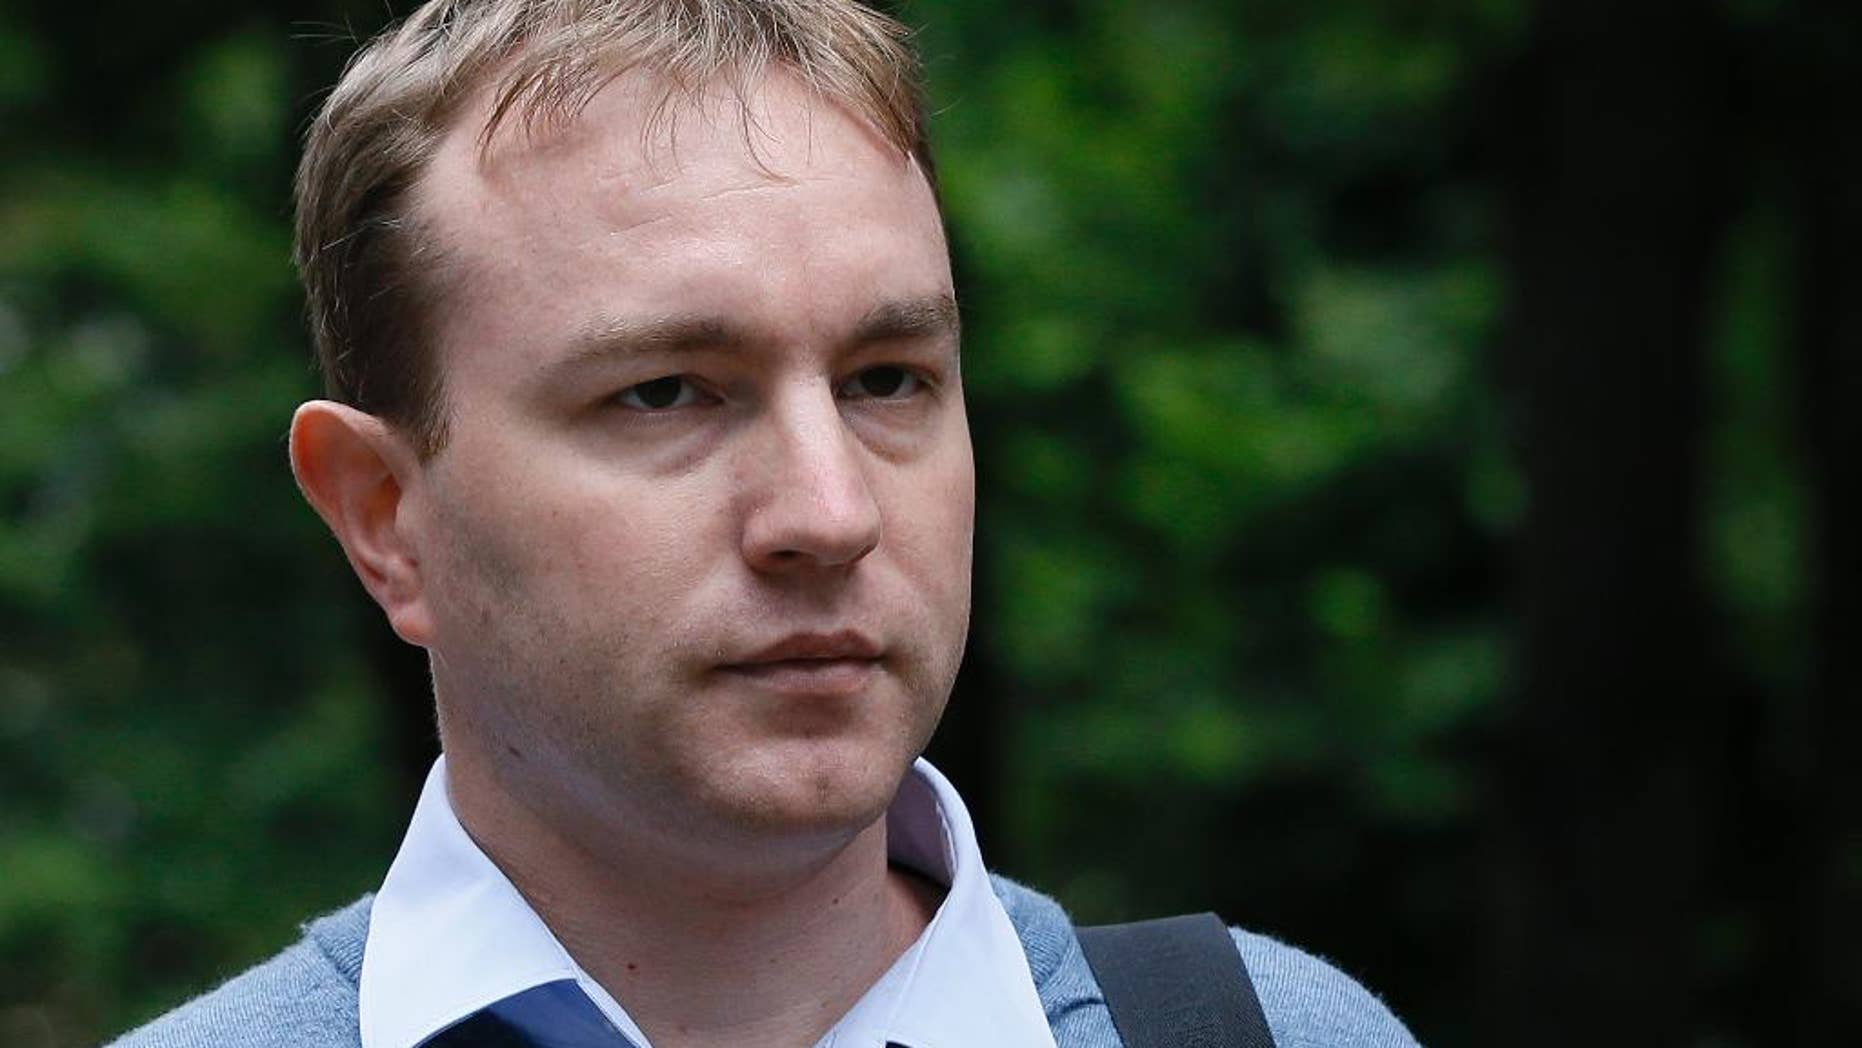 FILE - This is a  Monday, July 27, 2015 file photo of Tom Hayes  as arrives at Southwark Crown Court in London, Monday, July 27, 2015.  A British jury  found  former Citibank and UBS trader Tom Hayes guilty of being the ringmaster in the manipulation of a key interest rate, the London Interbank Lending Rate, or Libor. The jury on Monday Aug. 3, 2015  found 35-year-old Hayes, who specialized in products pegged to yen-denominated Libor, guilty of manipulating the rate from 2006 to 2010. He was charged with conspiring with other traders — but he says he was made a scapegoat for a common practice. (AP Photo/Kirsty Wigglesworth, File)